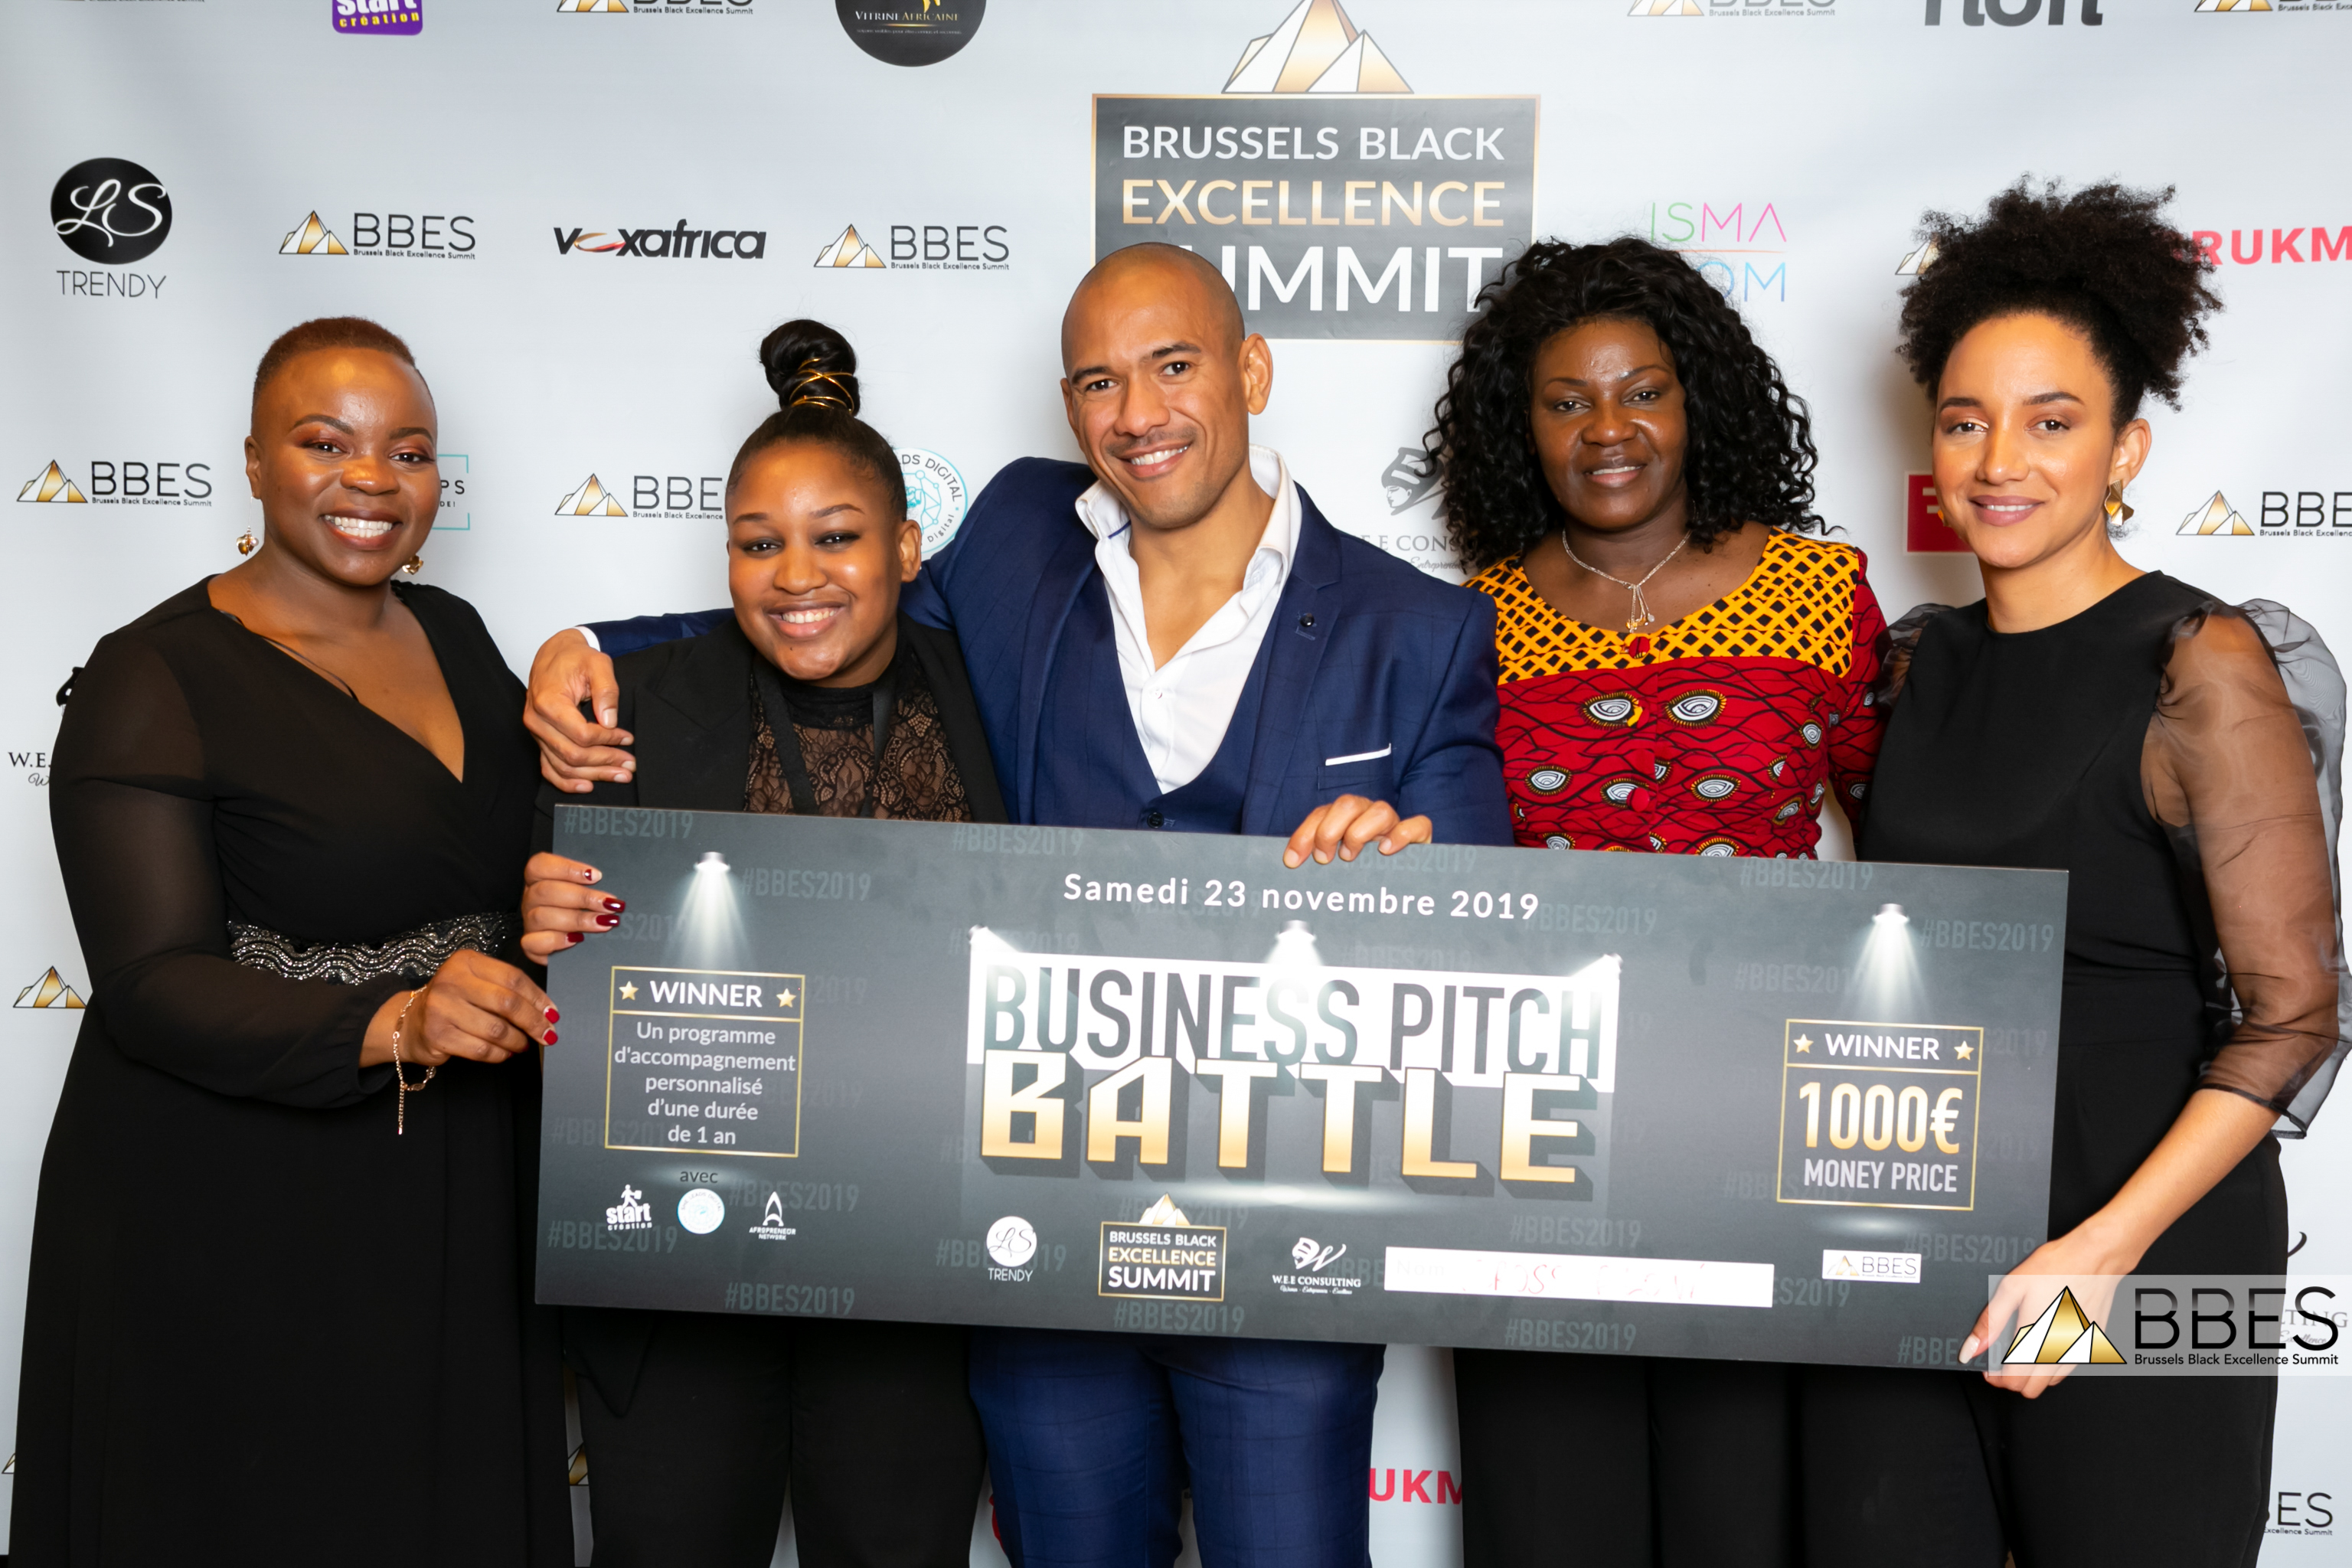 BBES 2019 - Brussels Black Excellence Summit